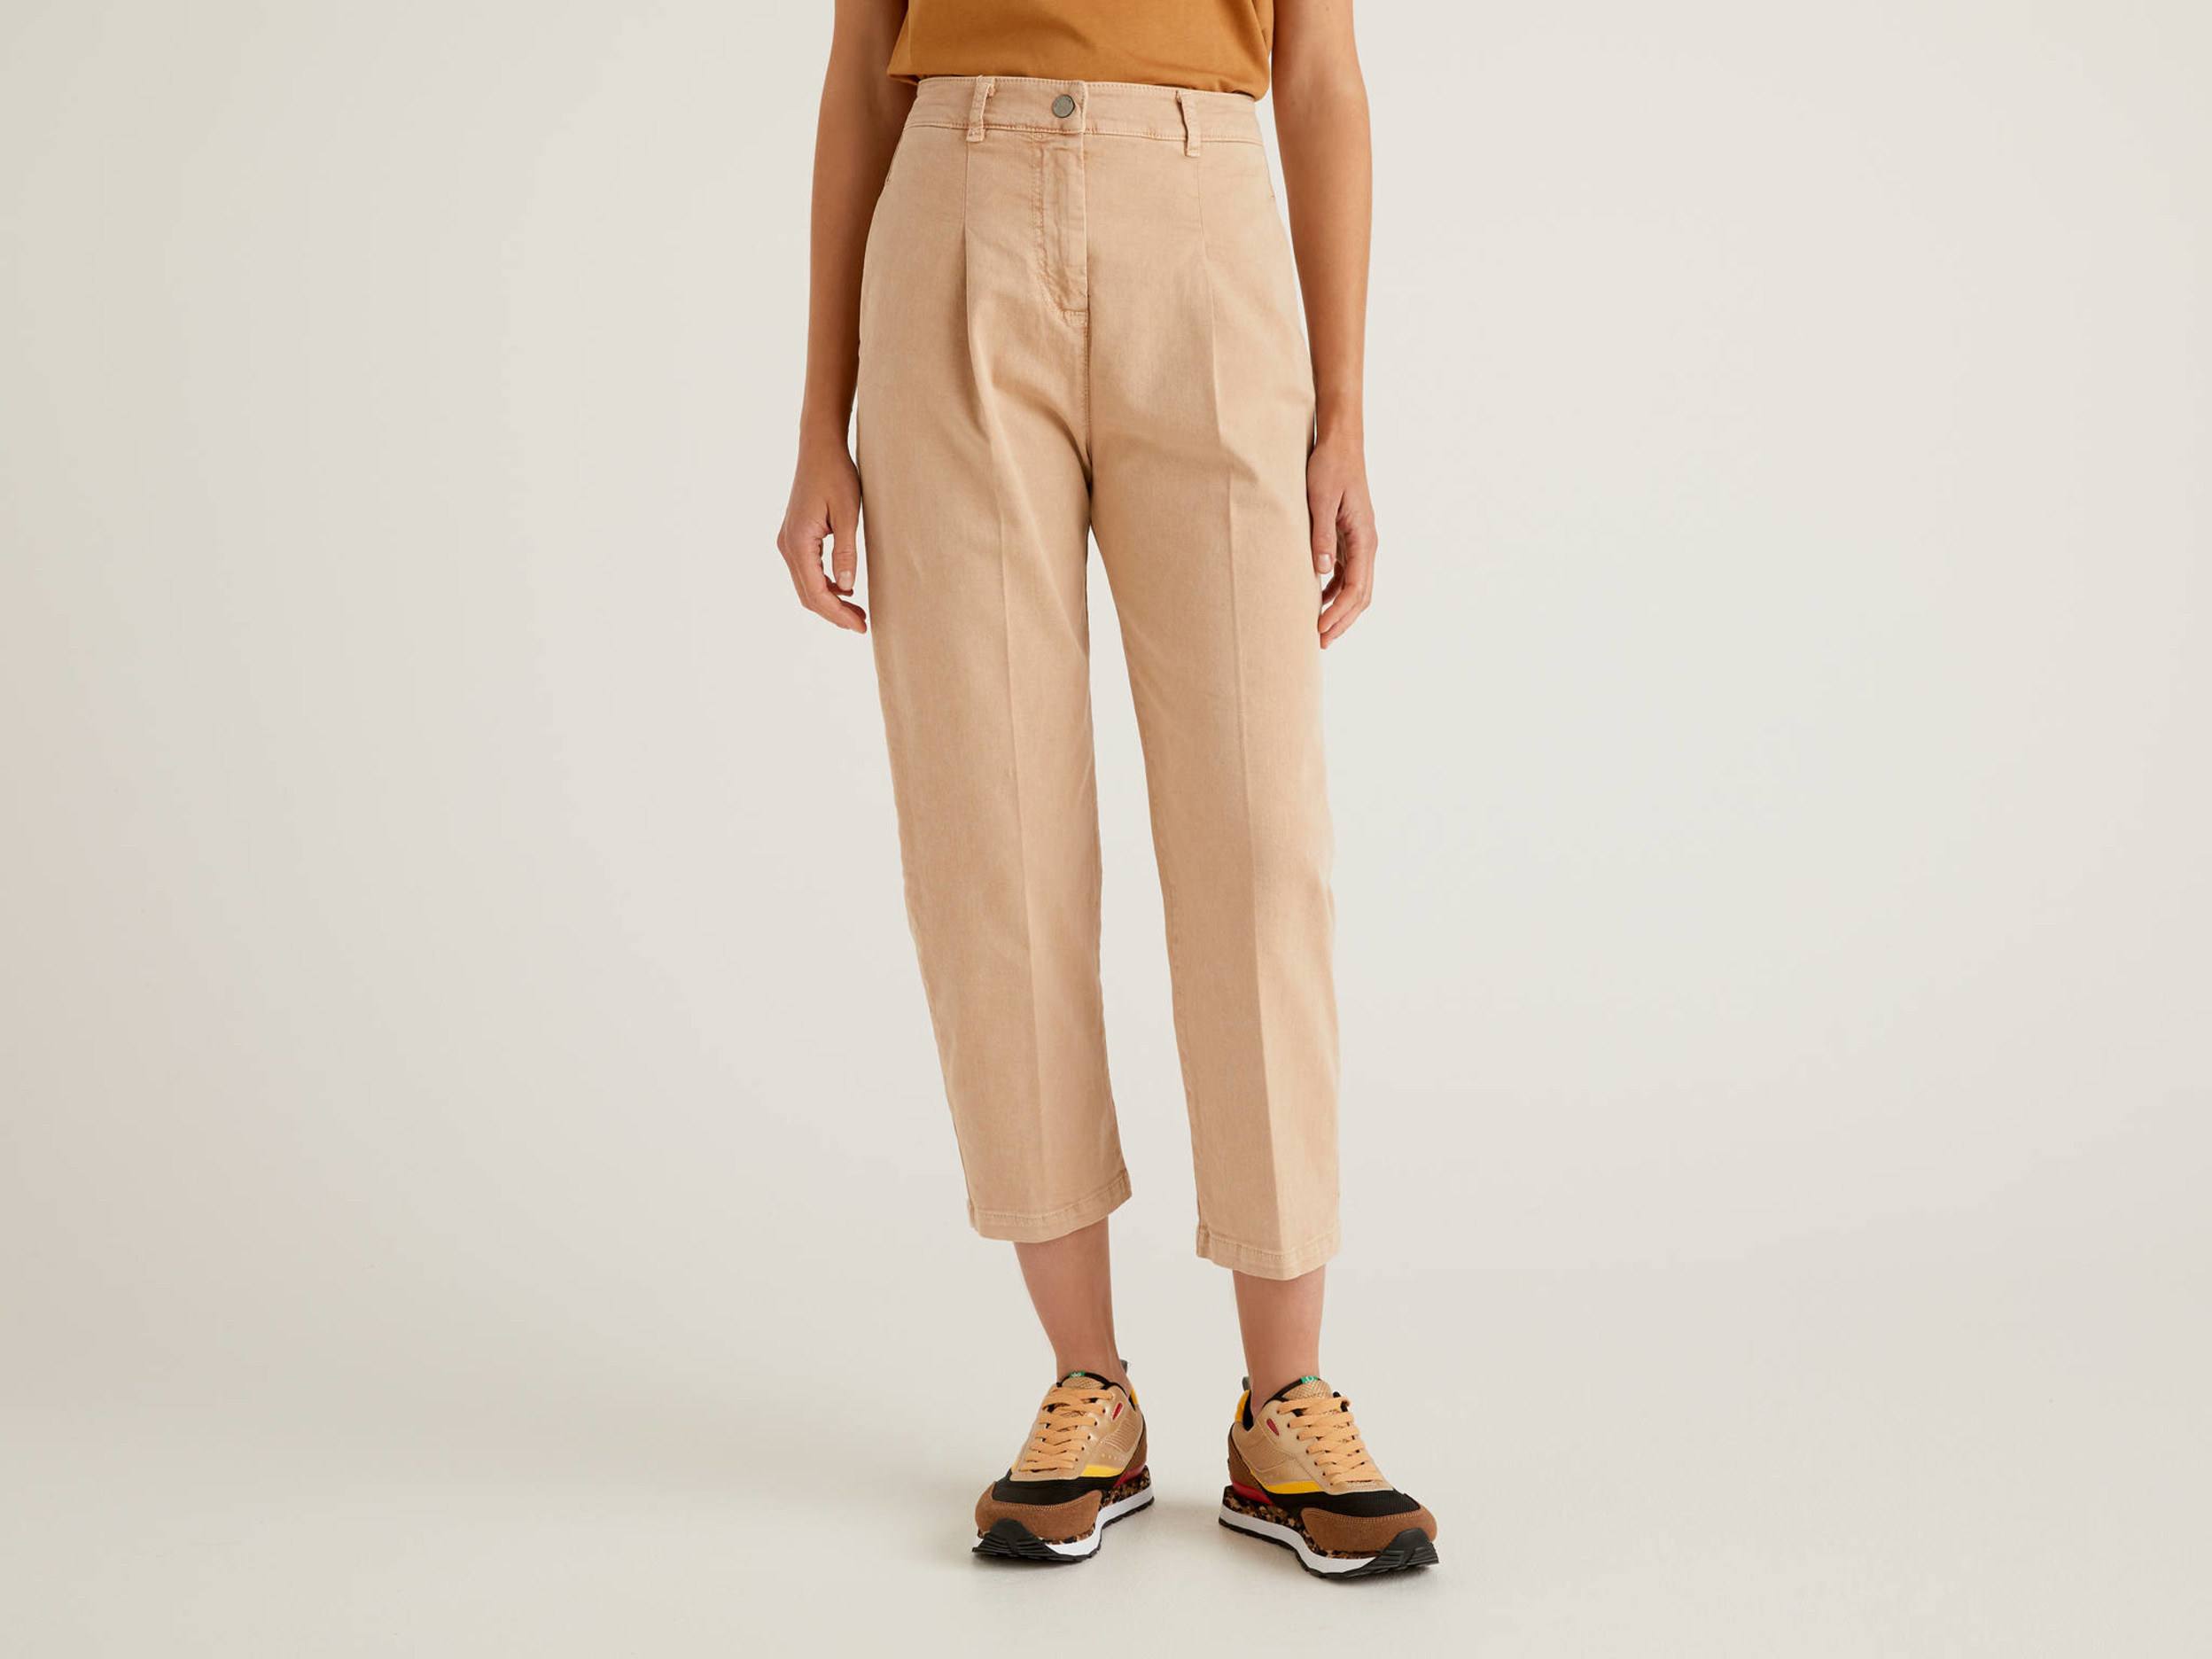 Benetton, Carrot Fit Trousers With Pleats, size 48, Soft Pink, Women